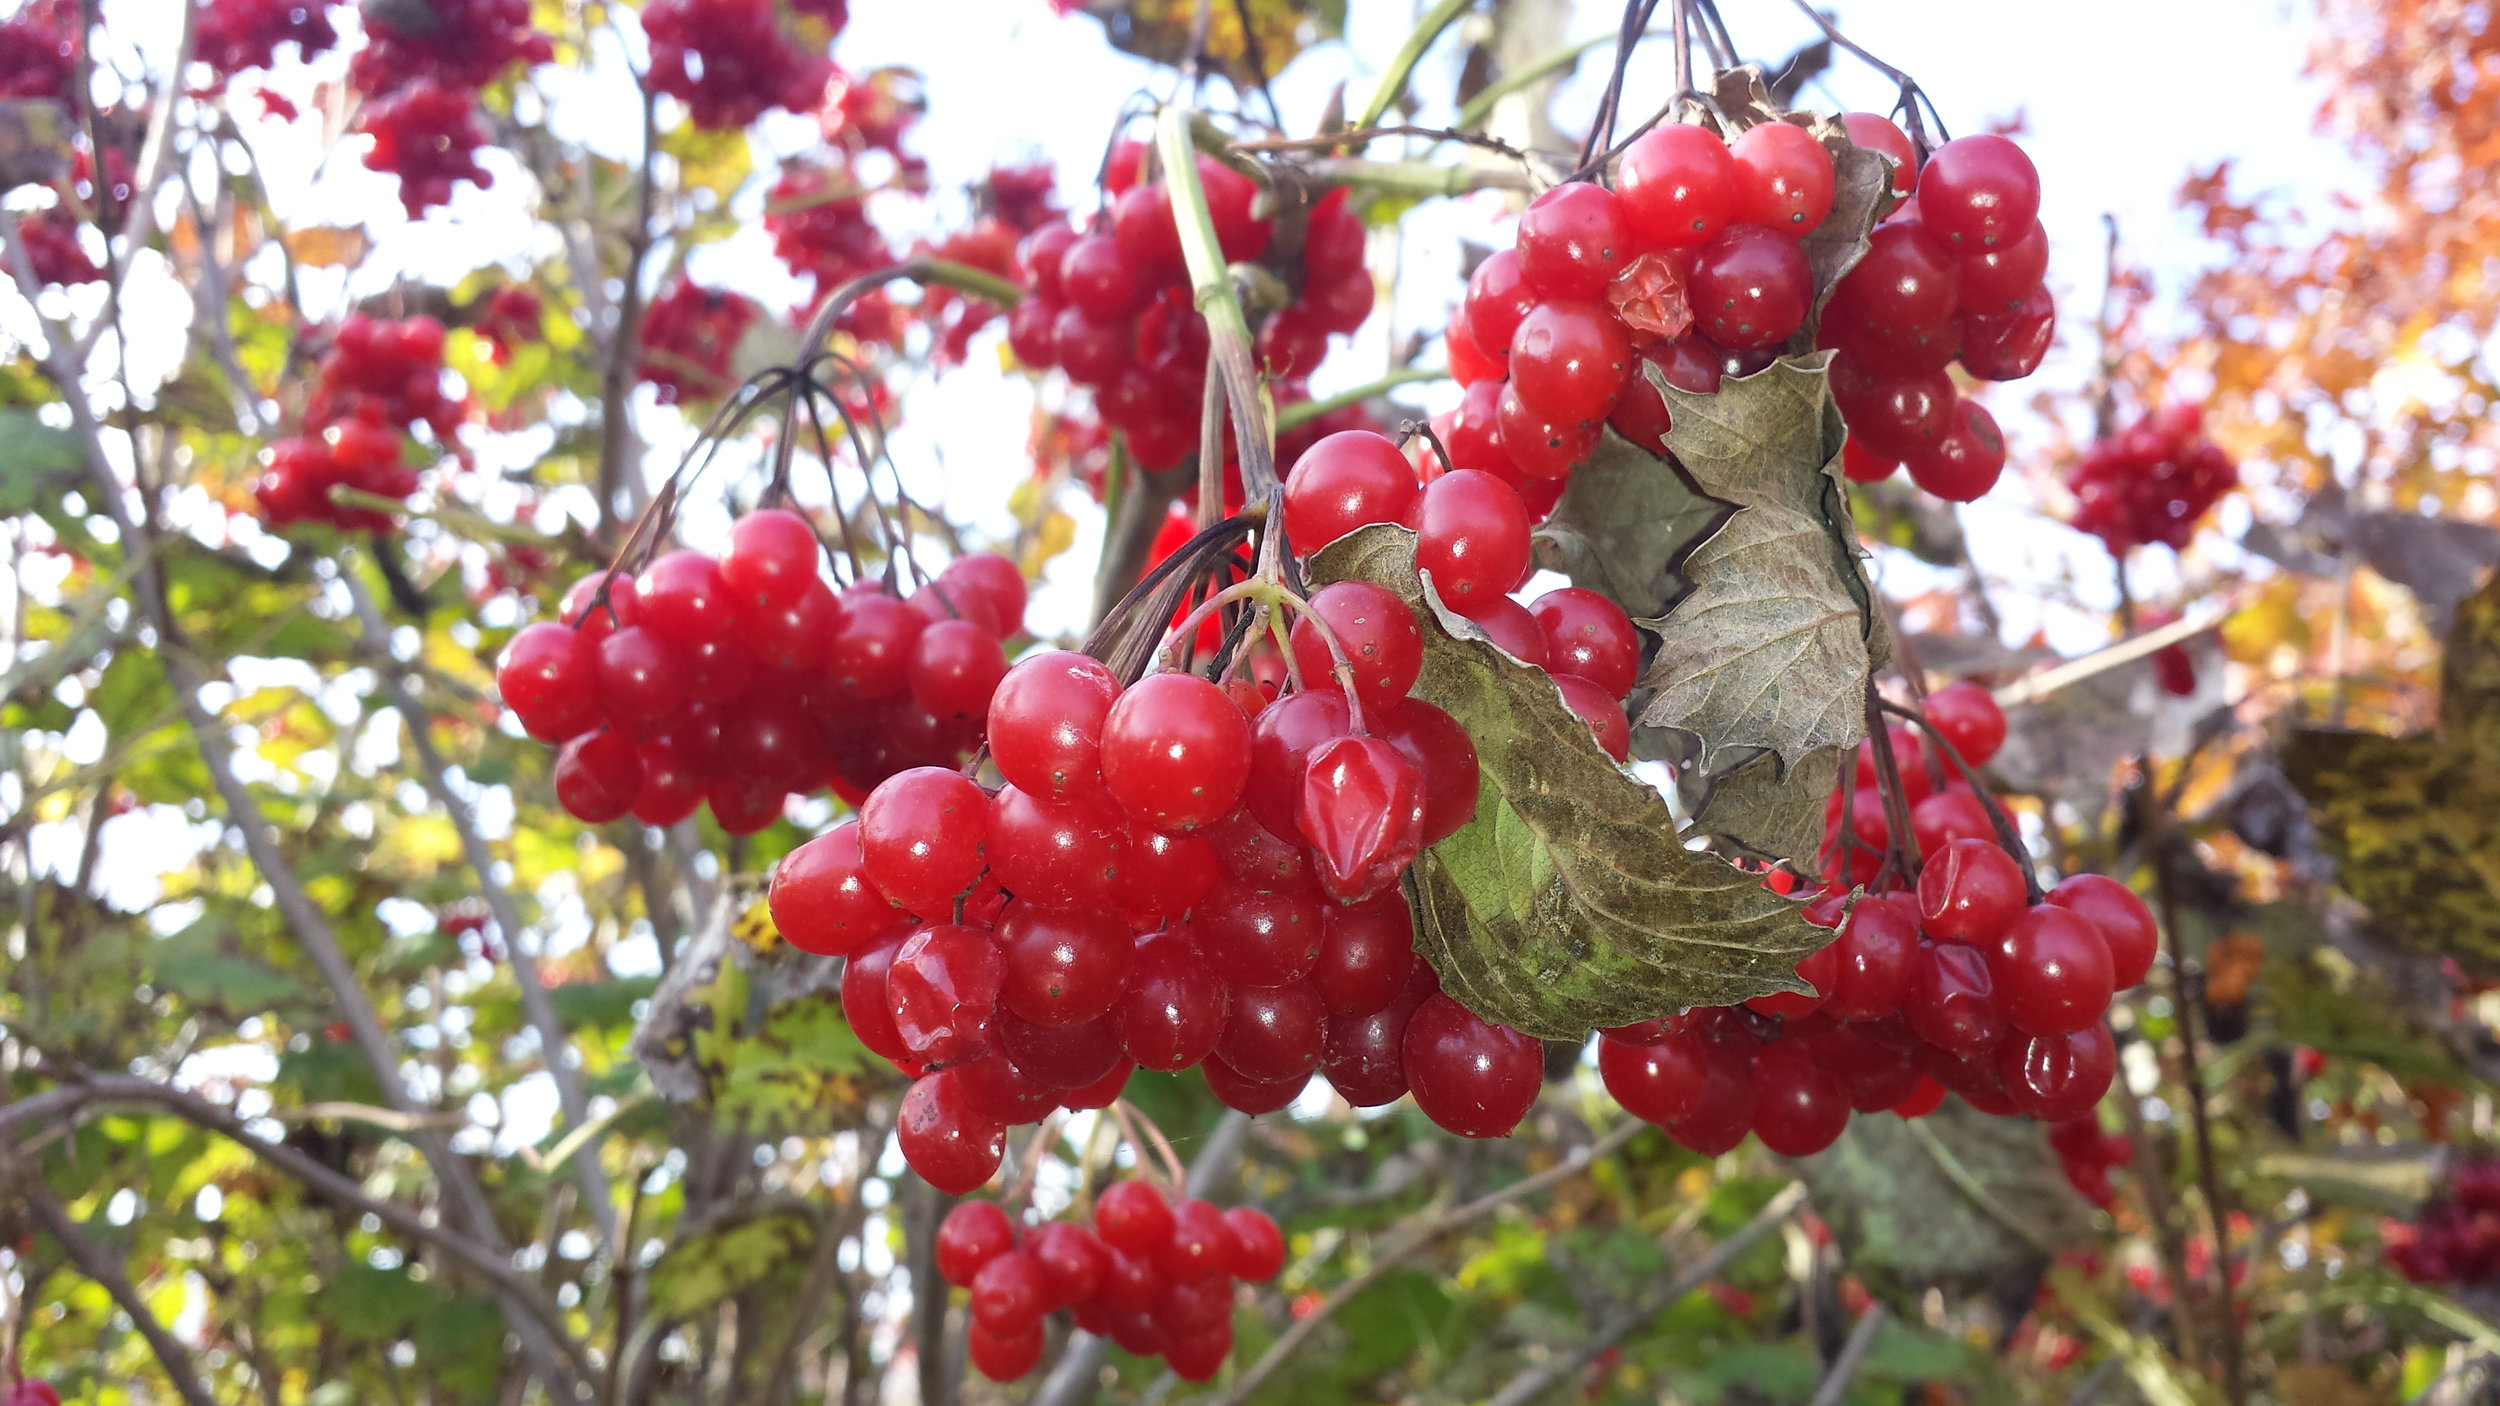 High bush cranberry is a heavy producer.